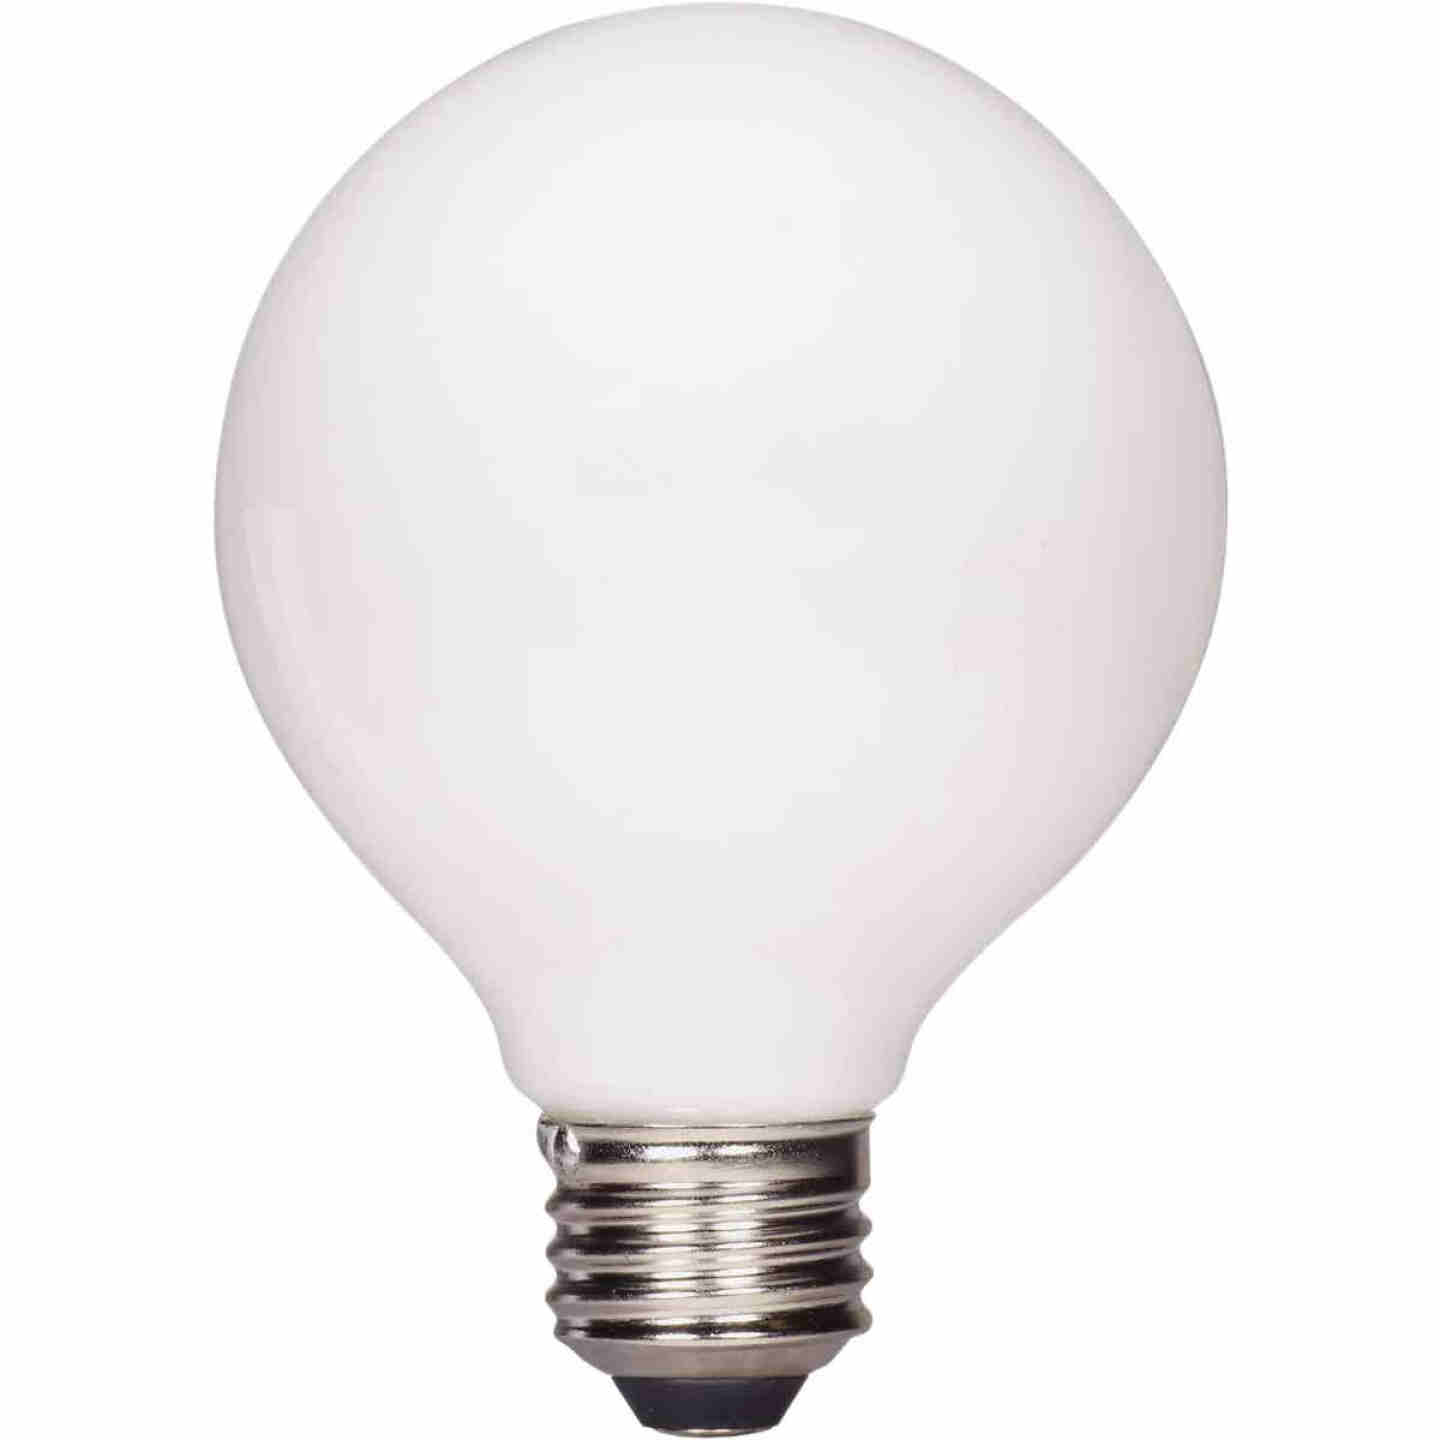 Satco Nuvo 40W Equivalent Warm White G25 Medium Frosted LED Decorative Light Bulb (2-Pack) Image 1